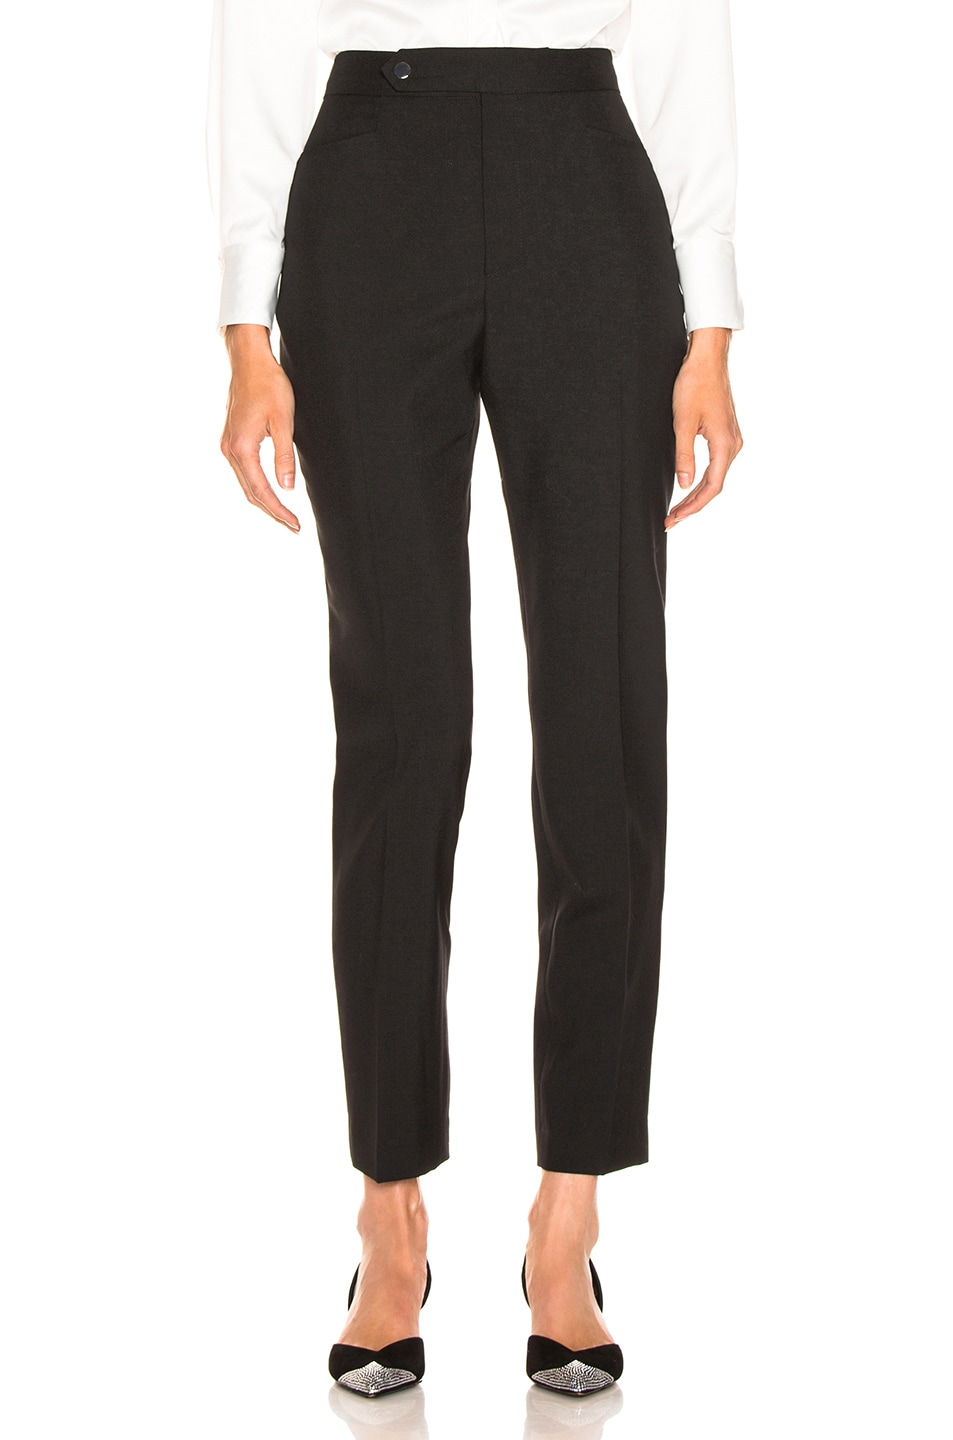 Image 1 of LAUREL & MULHOLLAND Anita High Waist Trouser in Black